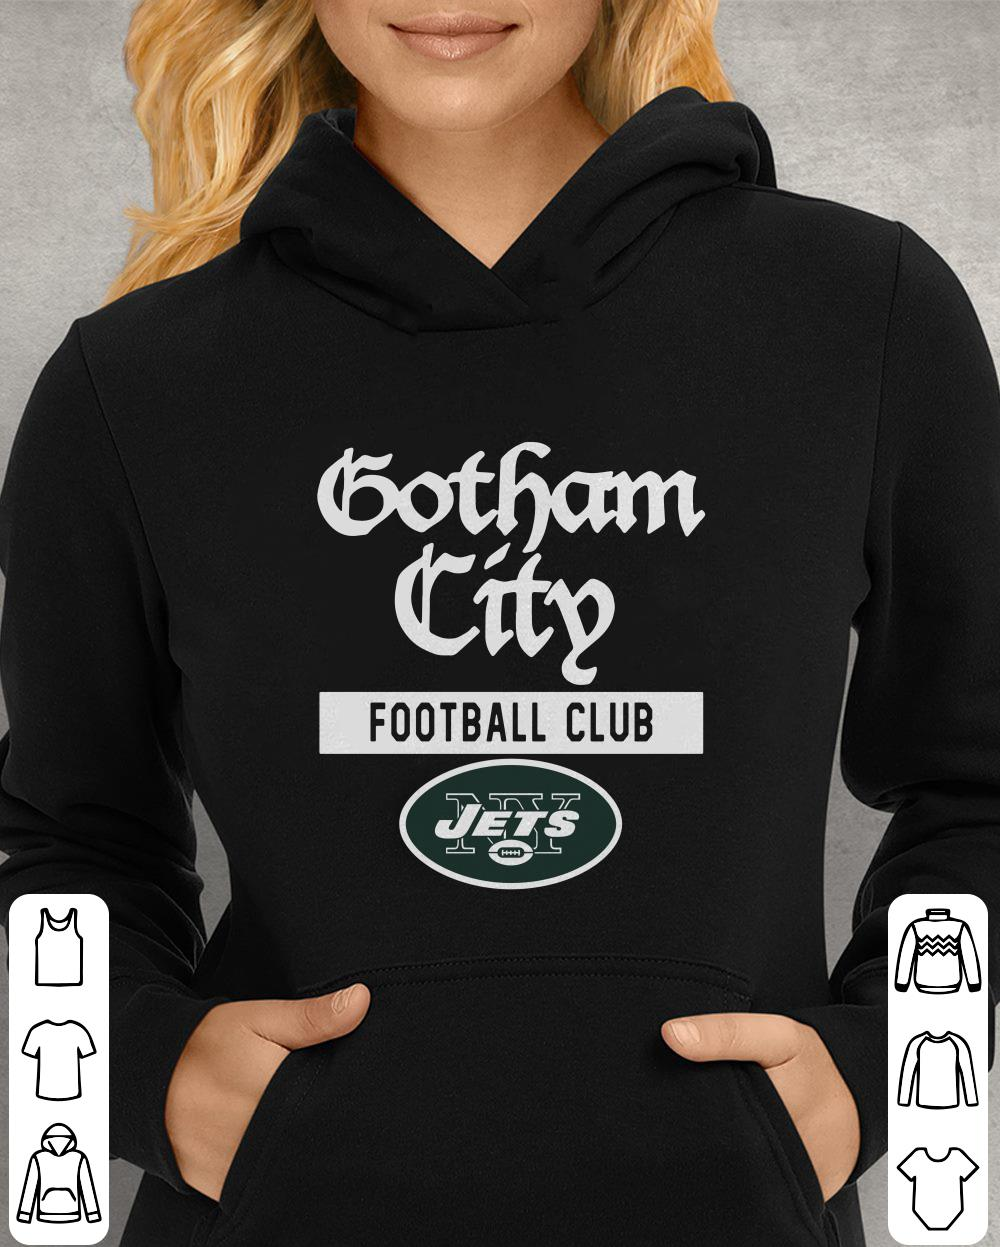 94f03fed5 New York Jets Gotham City Football club shirt - officialshirts.over ...